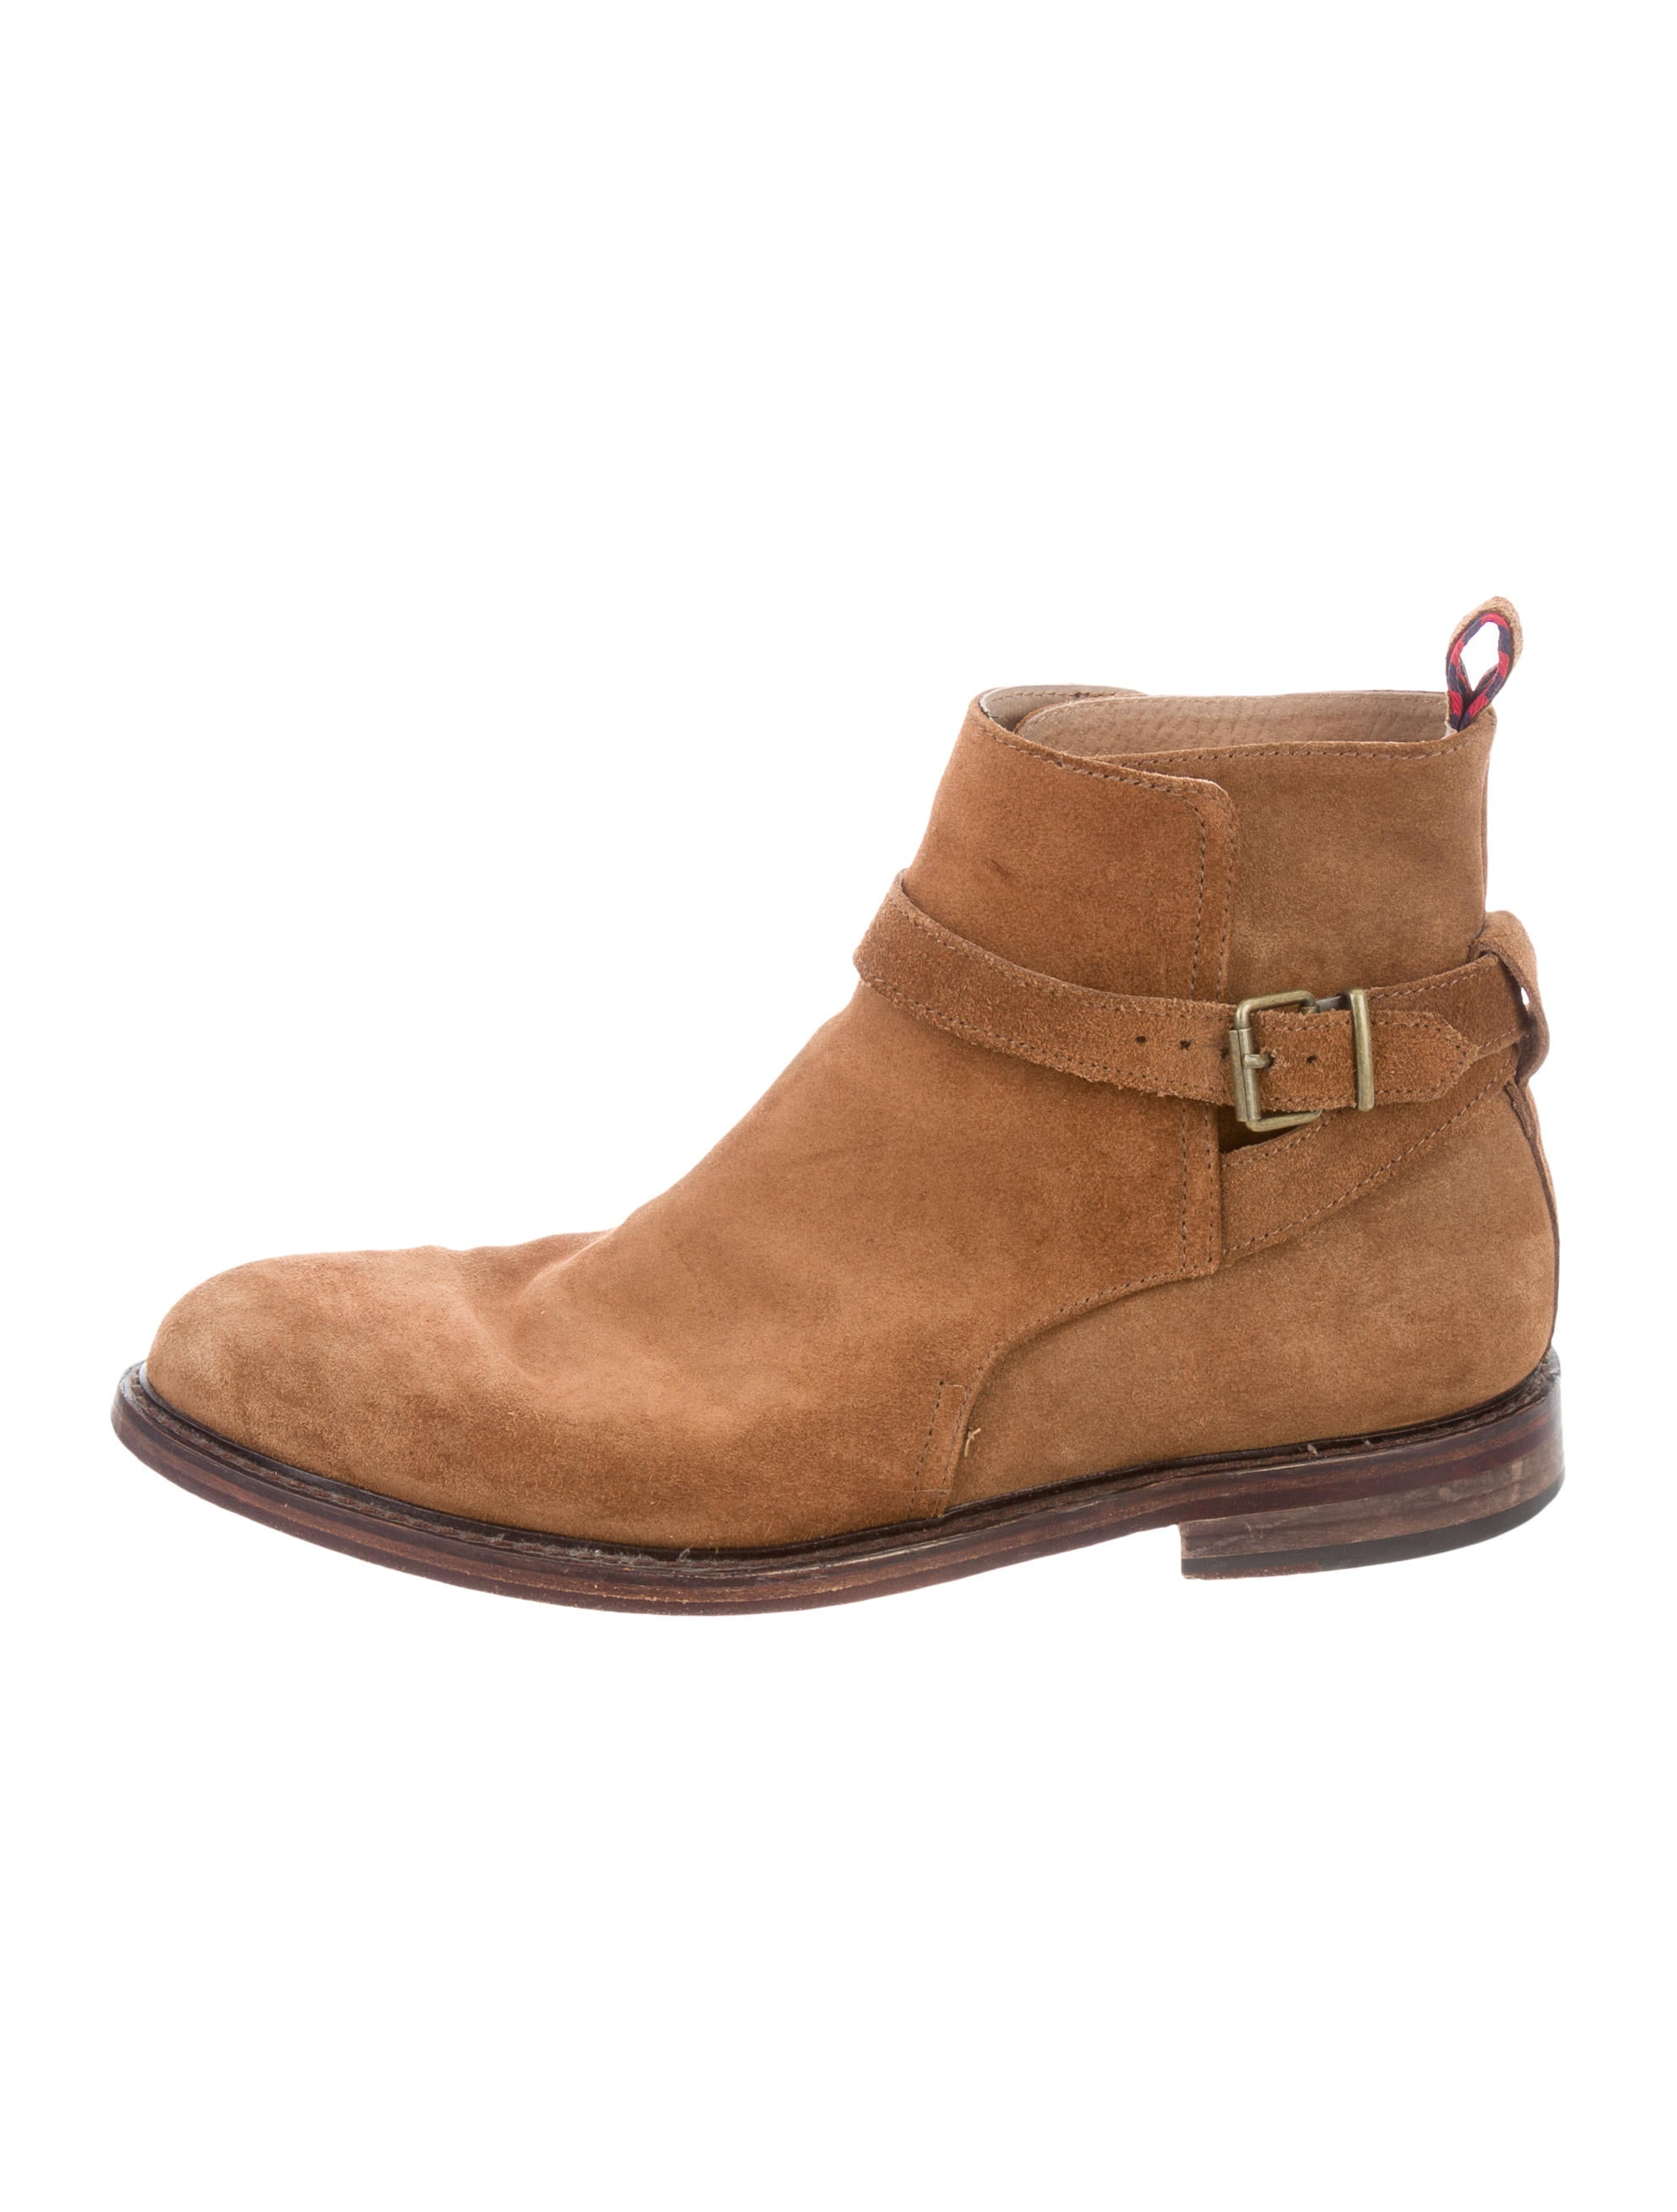 polo ralph suede toe ankle boots shoes